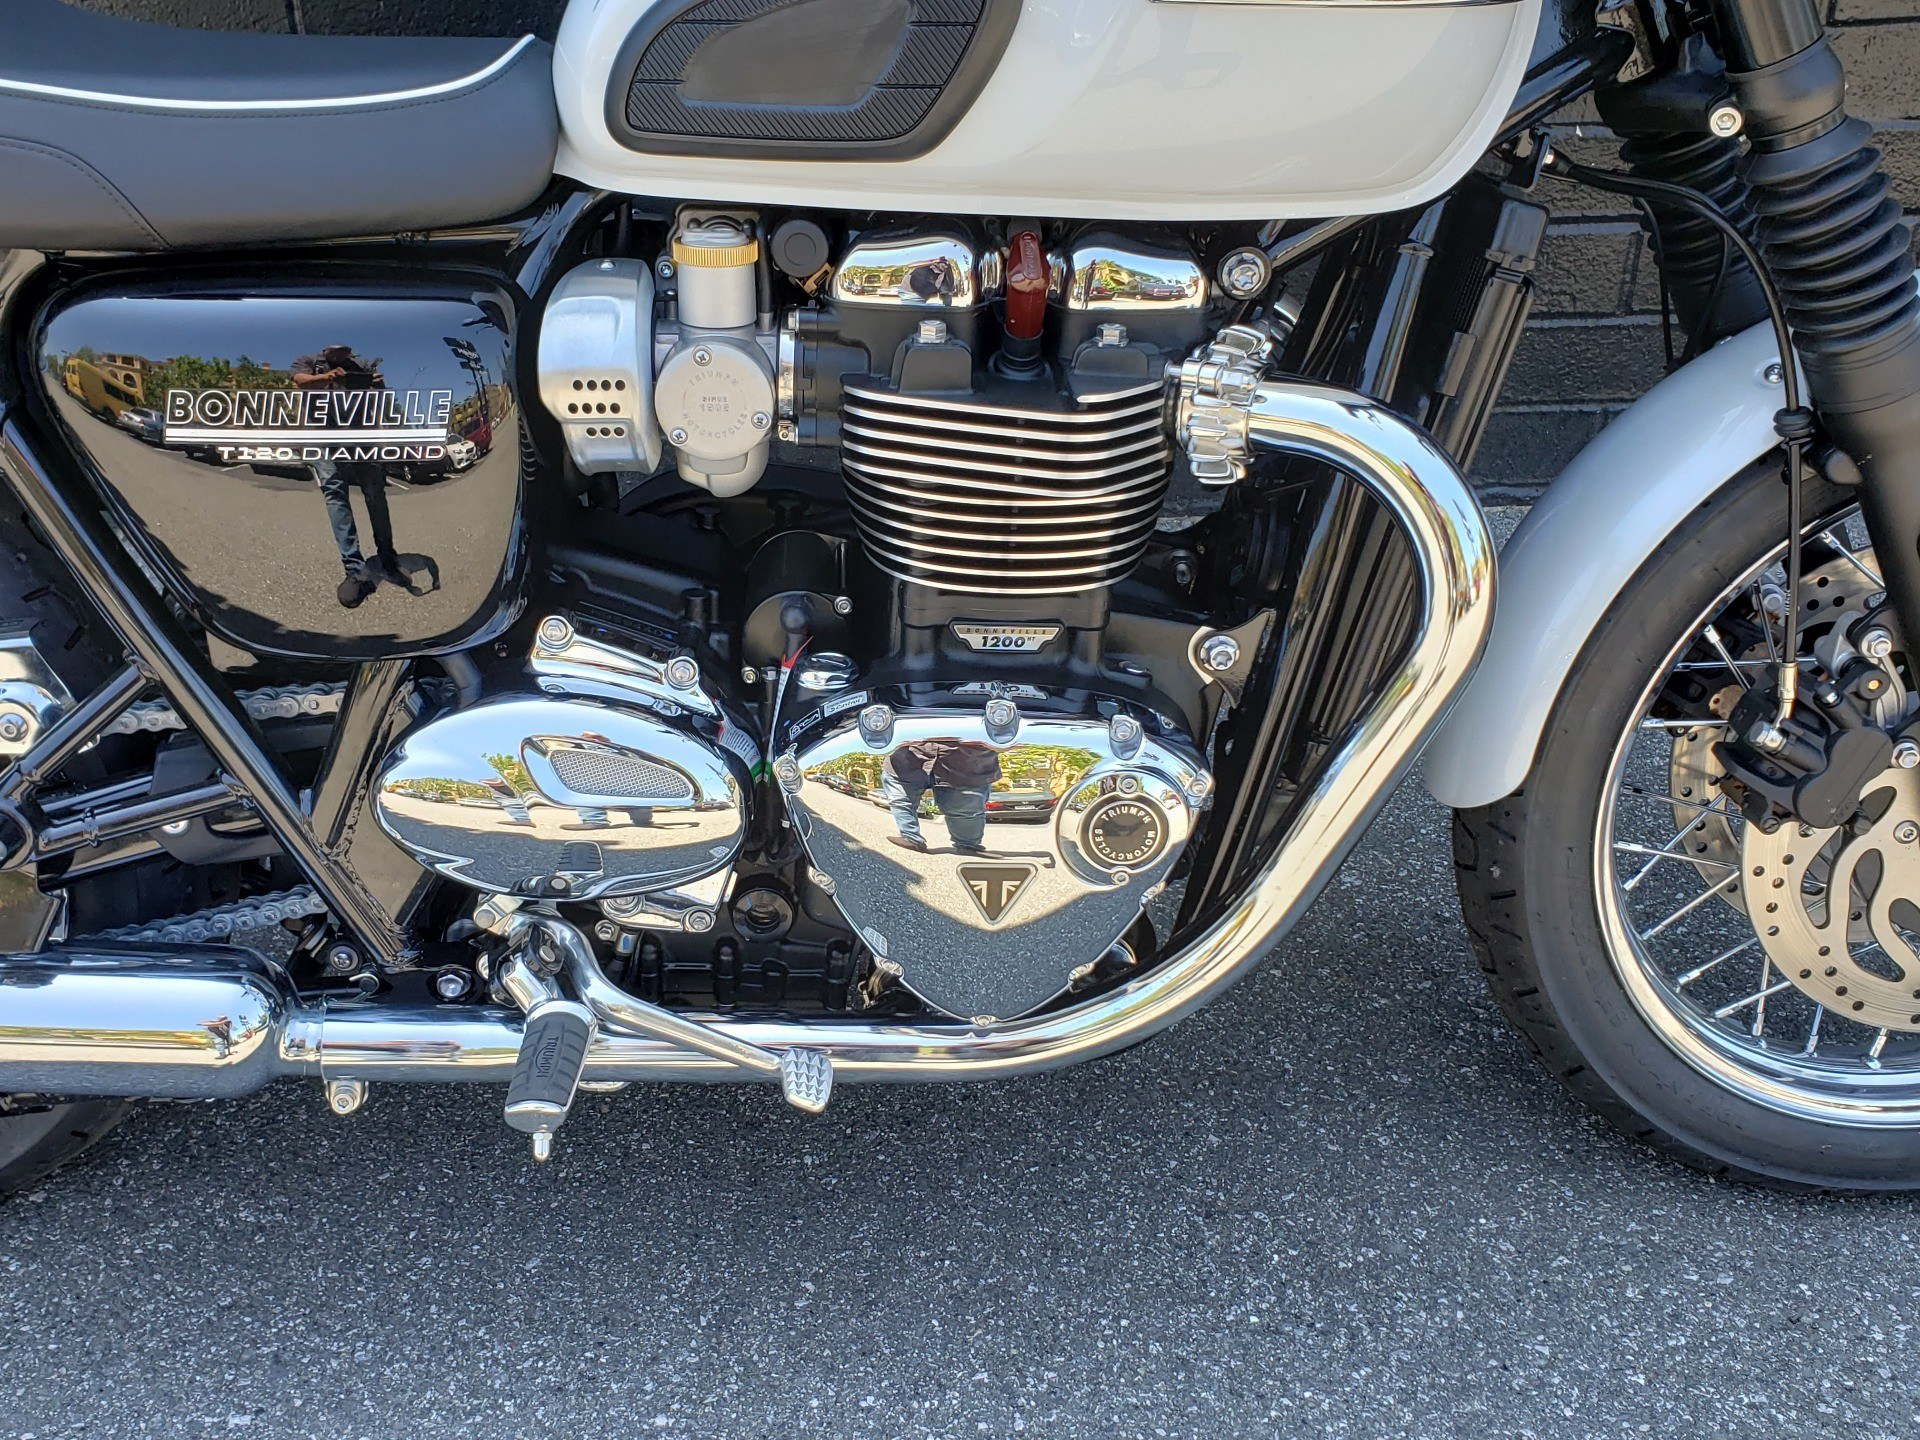 2020 Triumph Bonneville T120 Diamond Edition in San Jose, California - Photo 9